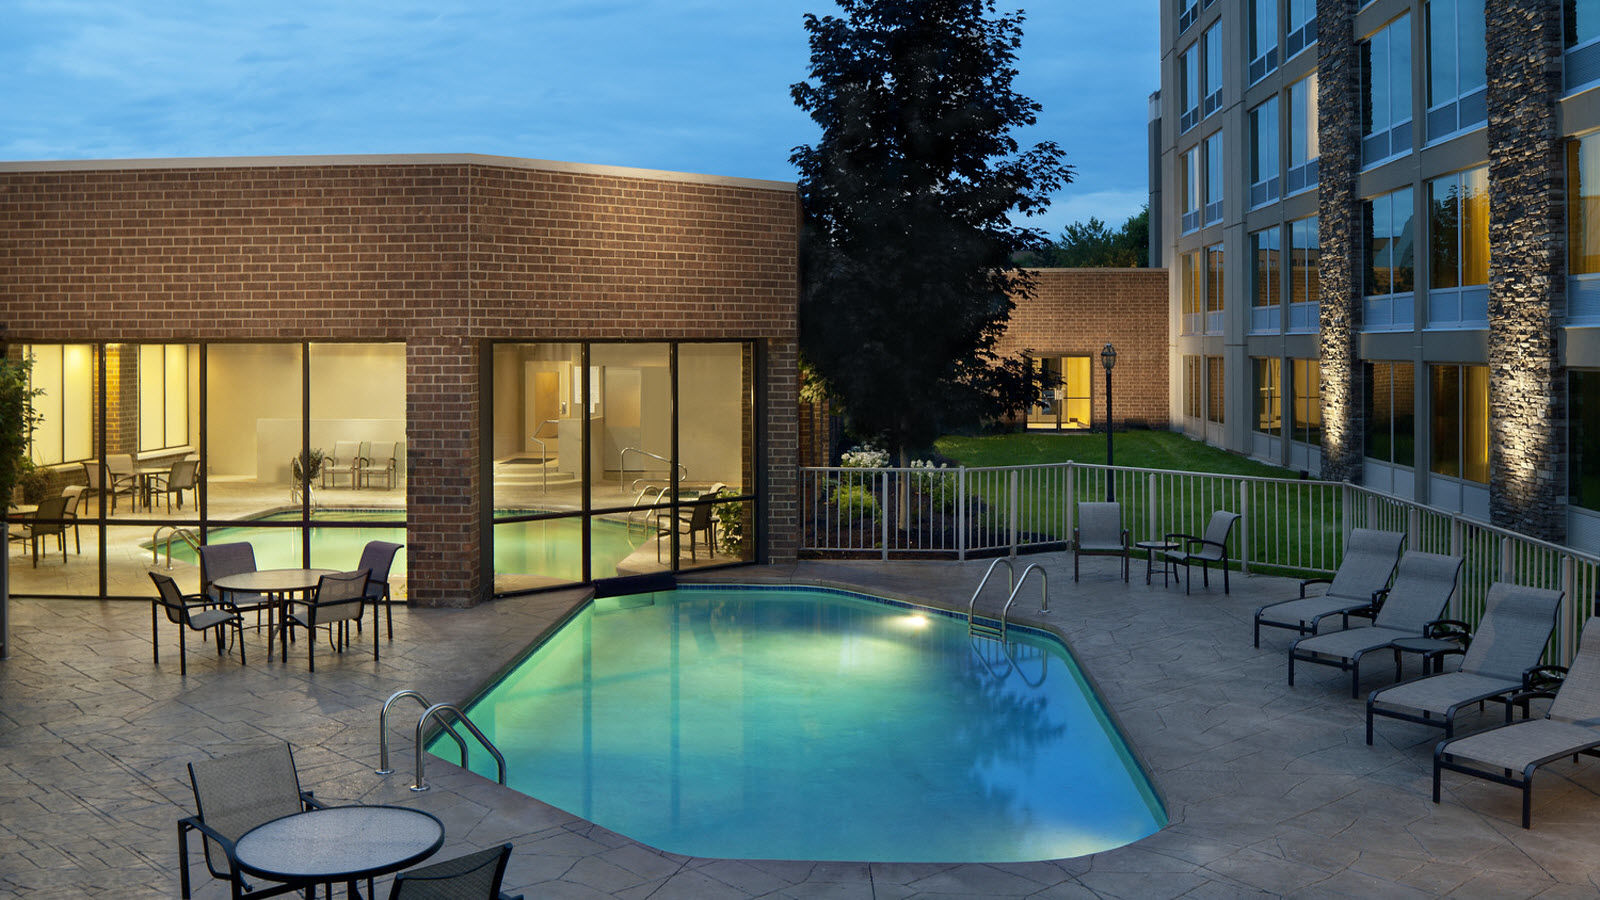 Ann Arbor Hotel with Pool - Outdoor